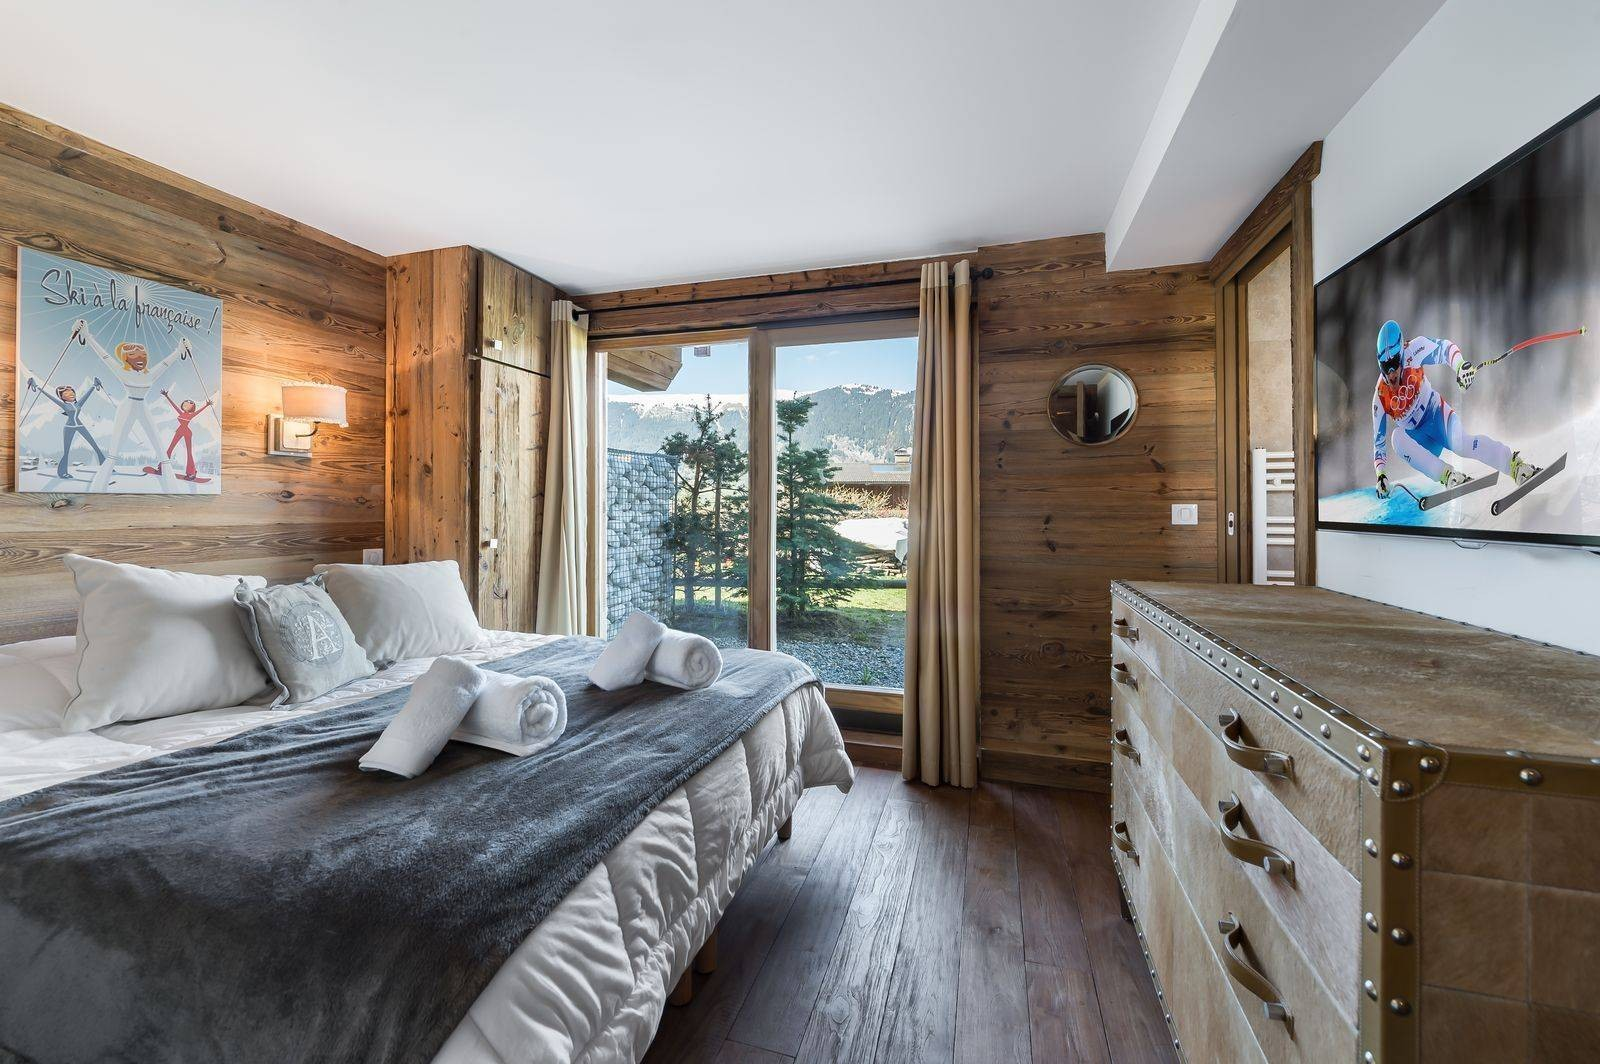 Courchevel 1300 Location Appartement Luxe Tilure Chambre 3